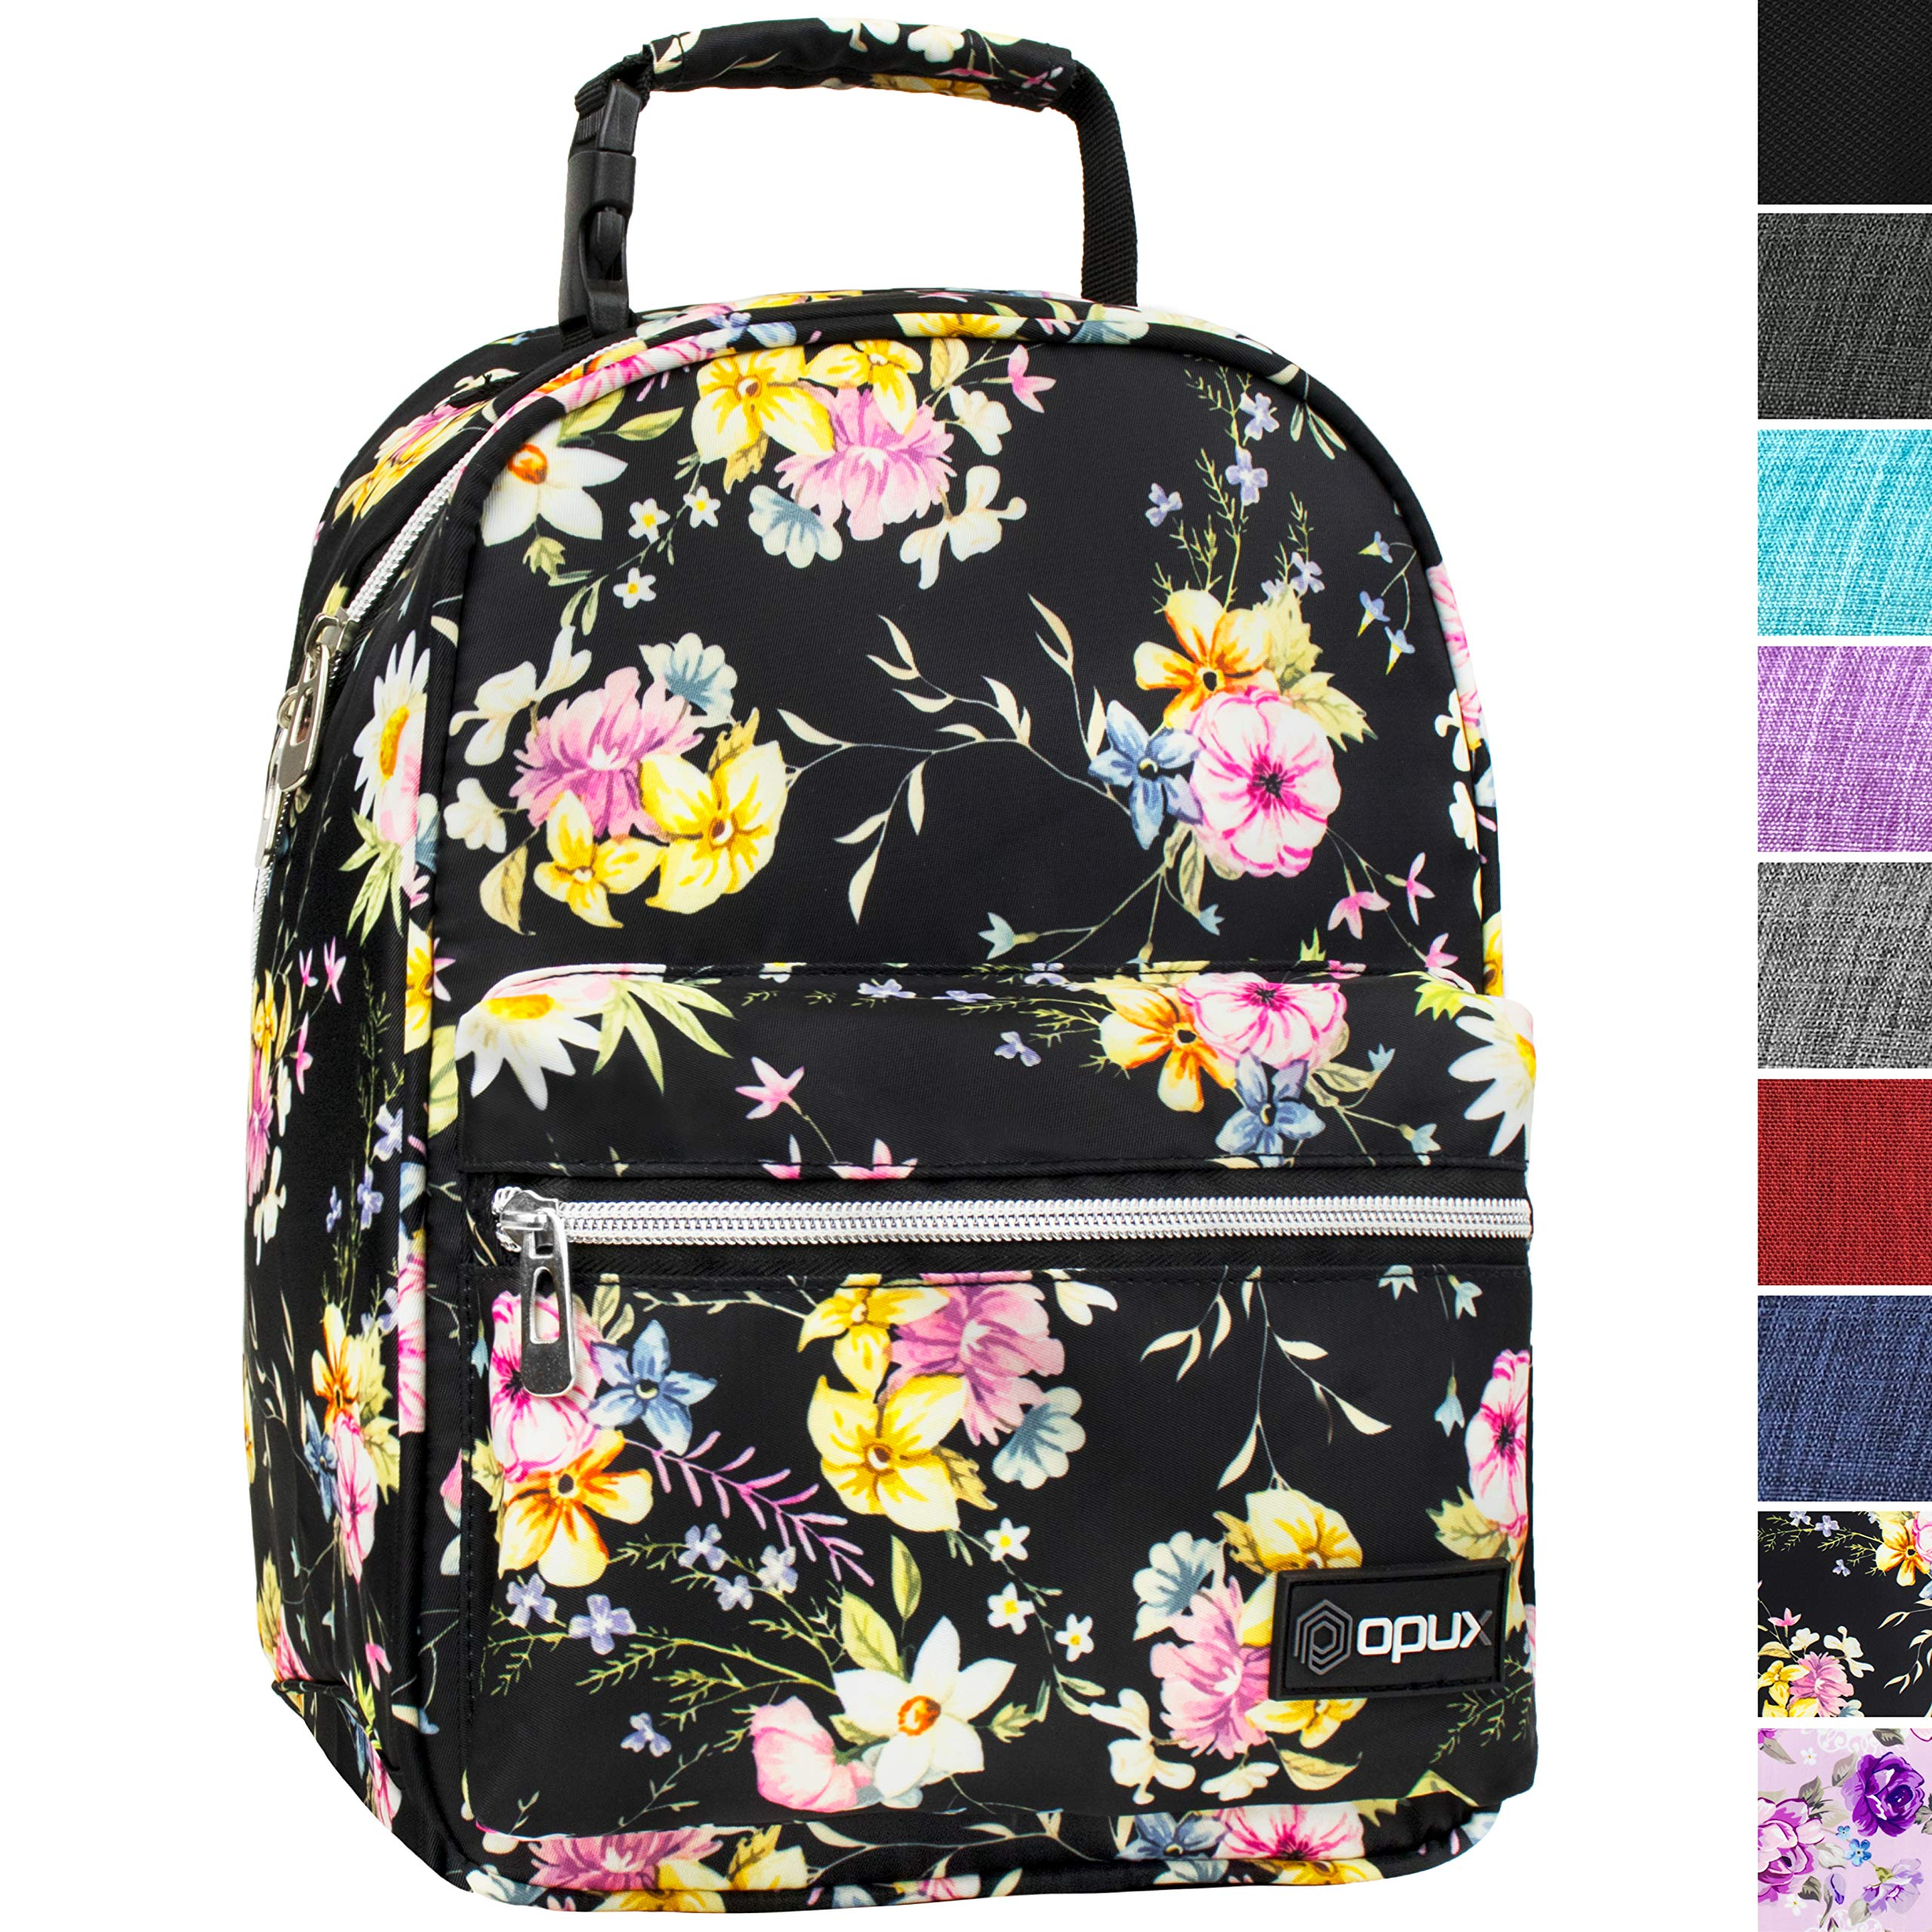 OPUX Premium Insulated Lunch Box for Girls | Durable Leakproof School Lunch Bag with Handle Clip, Mesh Pocket | Reusable Work Lunch Pail Cooler for Adult, Men, Women | Fits 14 Soda Cans (Black Floral)